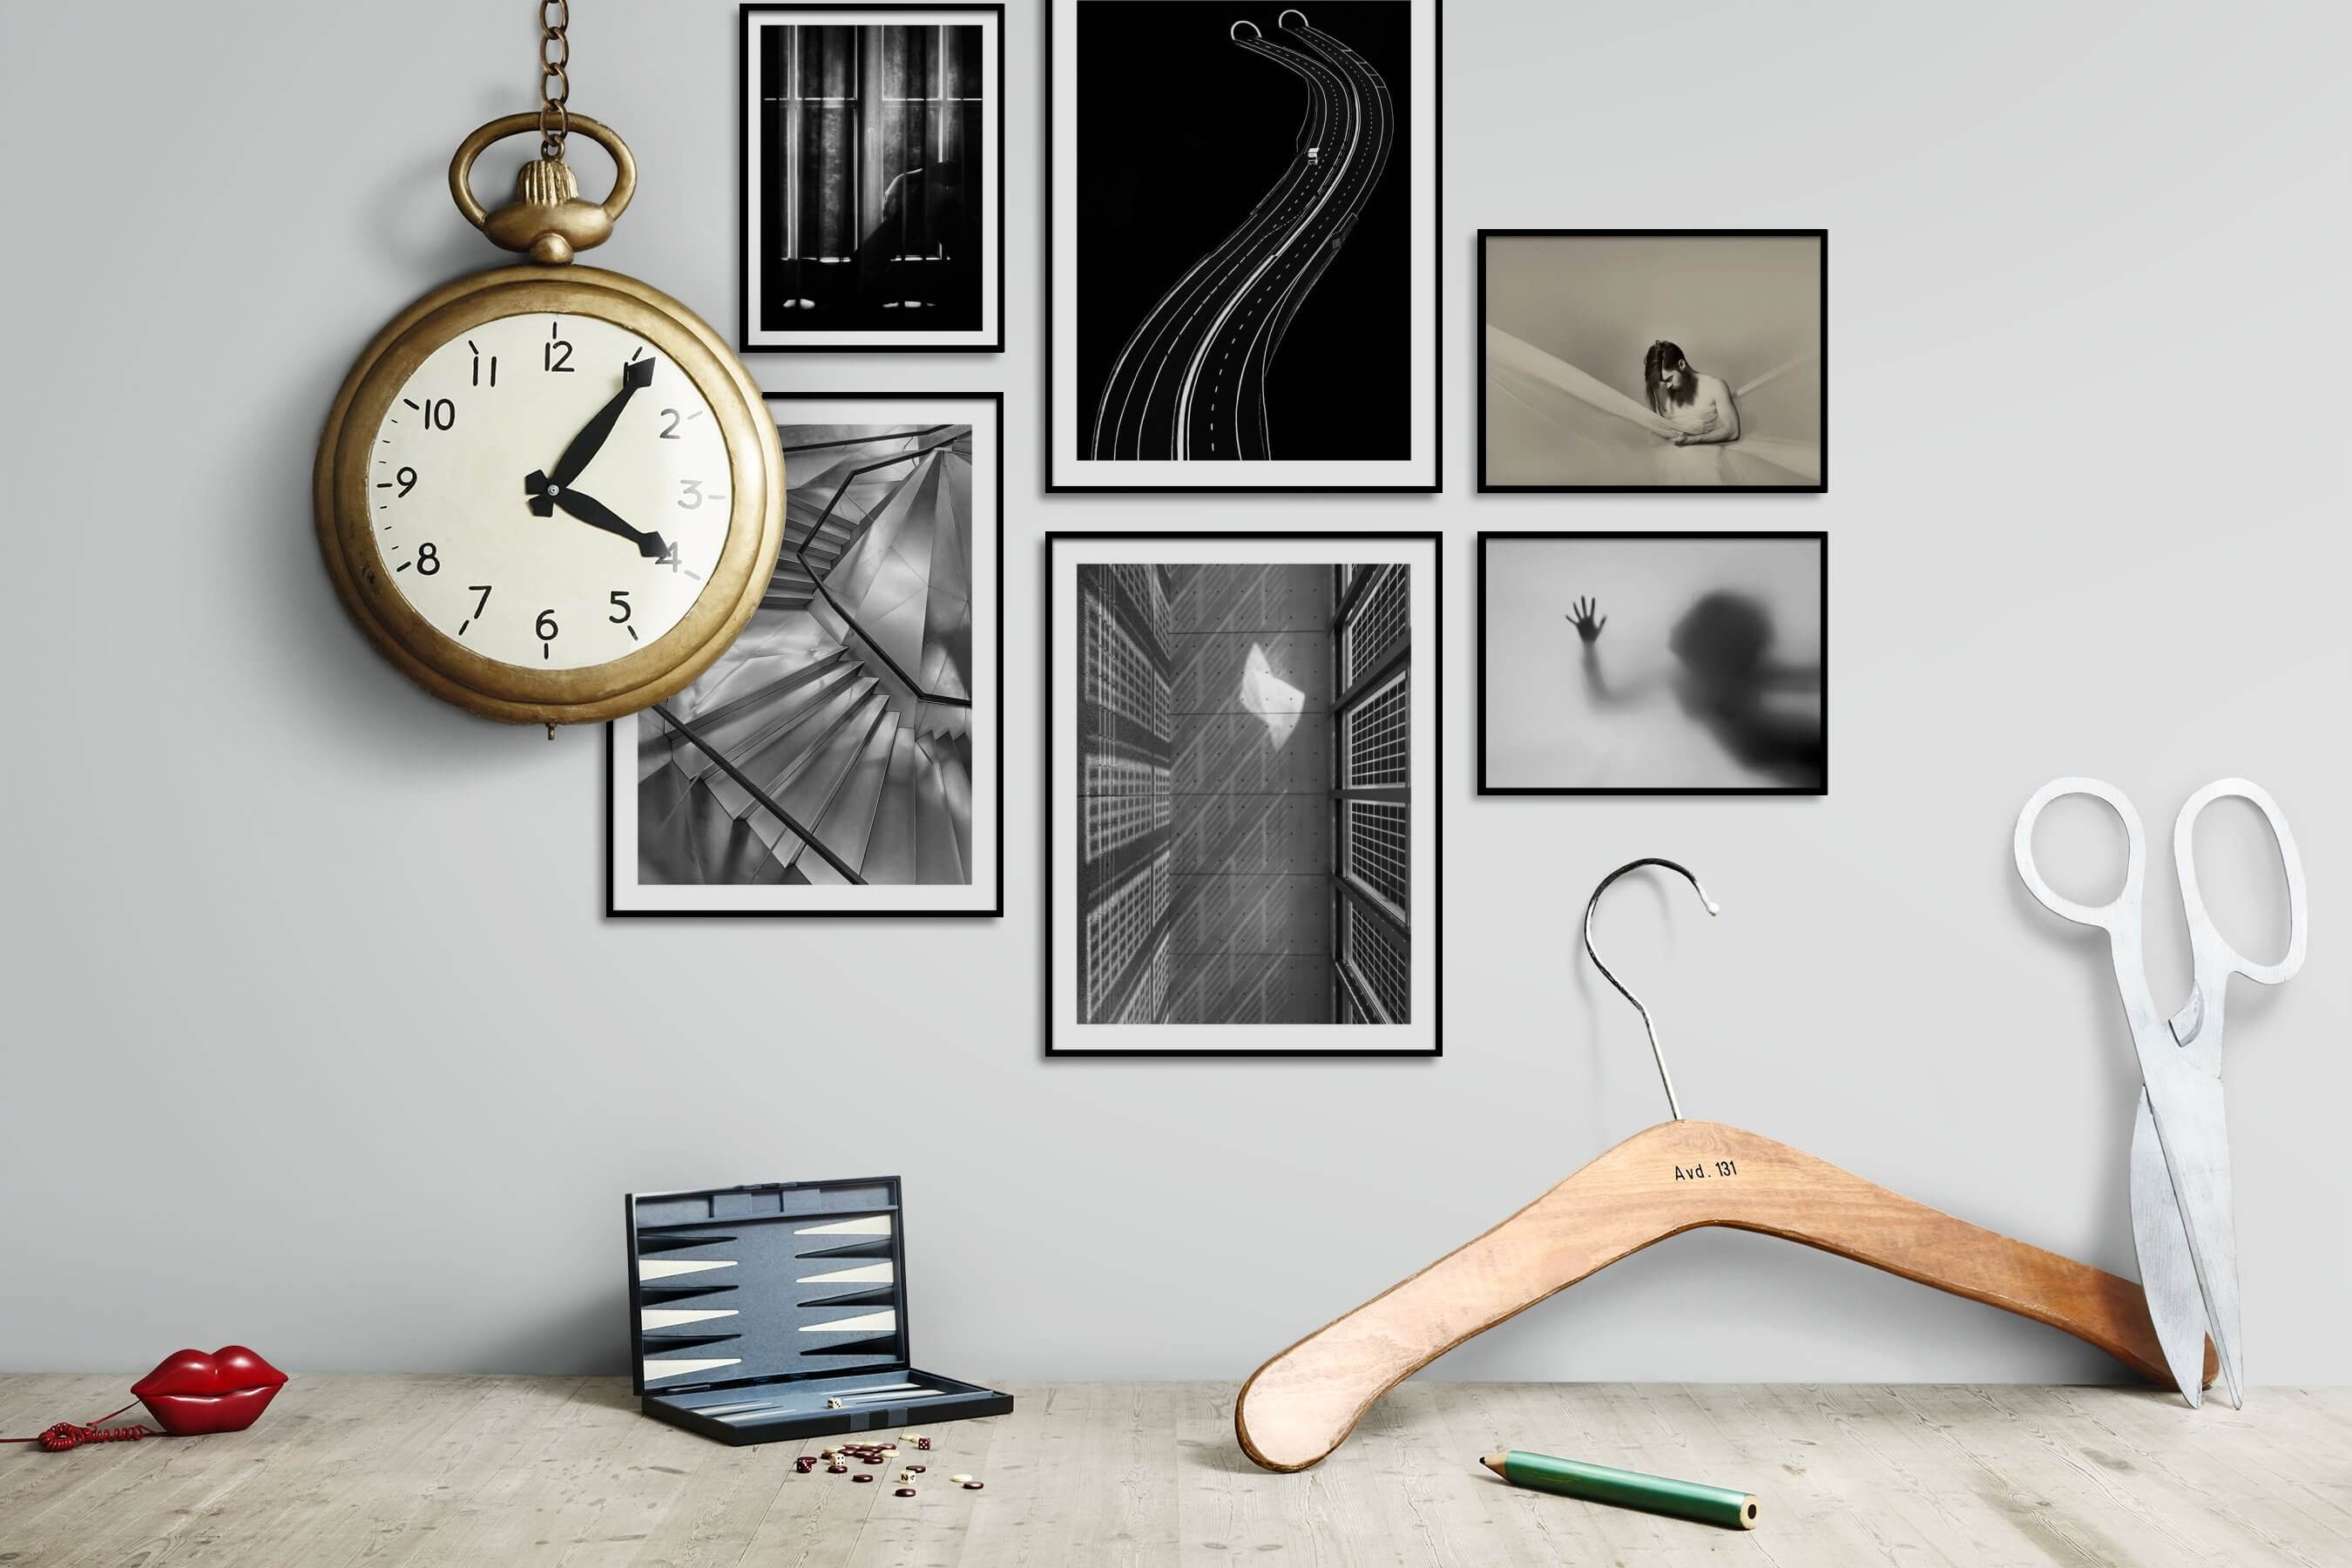 Gallery wall idea with six framed pictures arranged on a wall depicting Black & White, For the Moderate, For the Minimalist, Fashion & Beauty, and Artsy